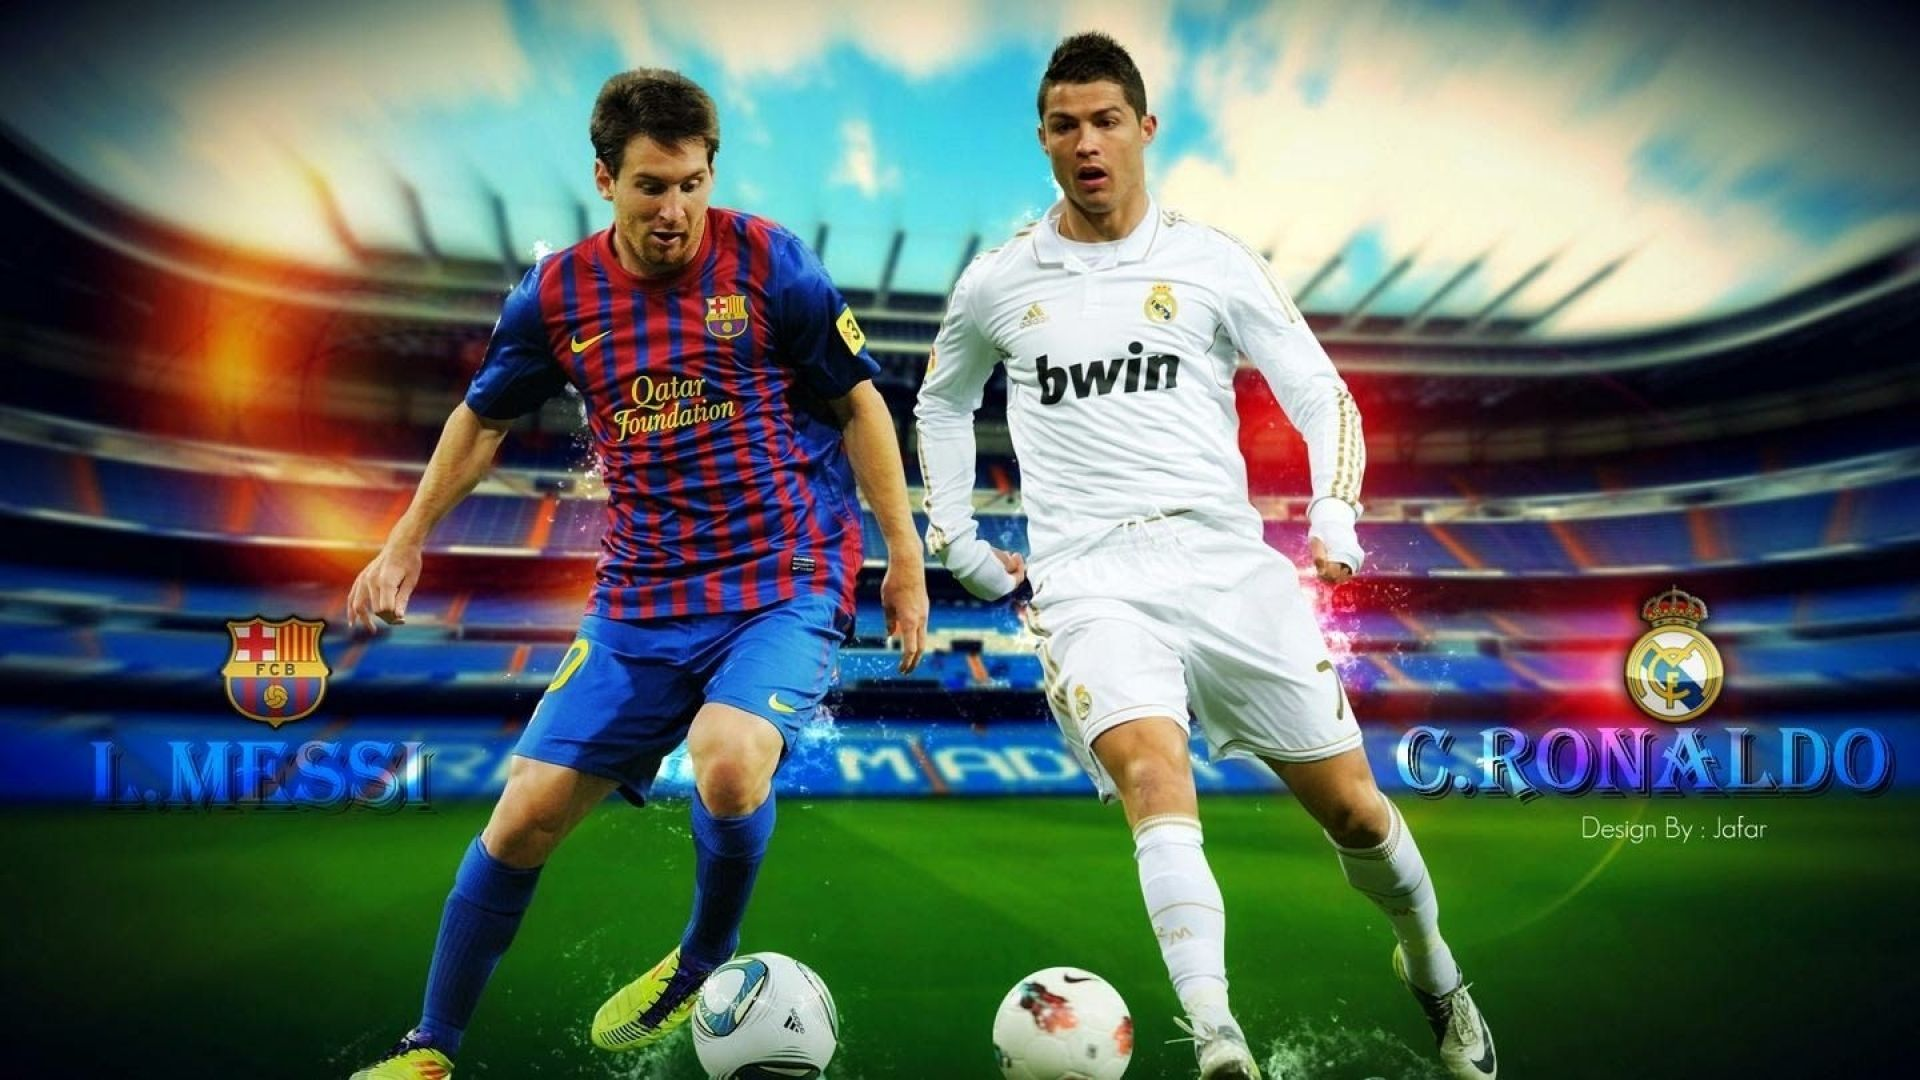 712a8c532 Messi and Ronaldo Wallpaper Download